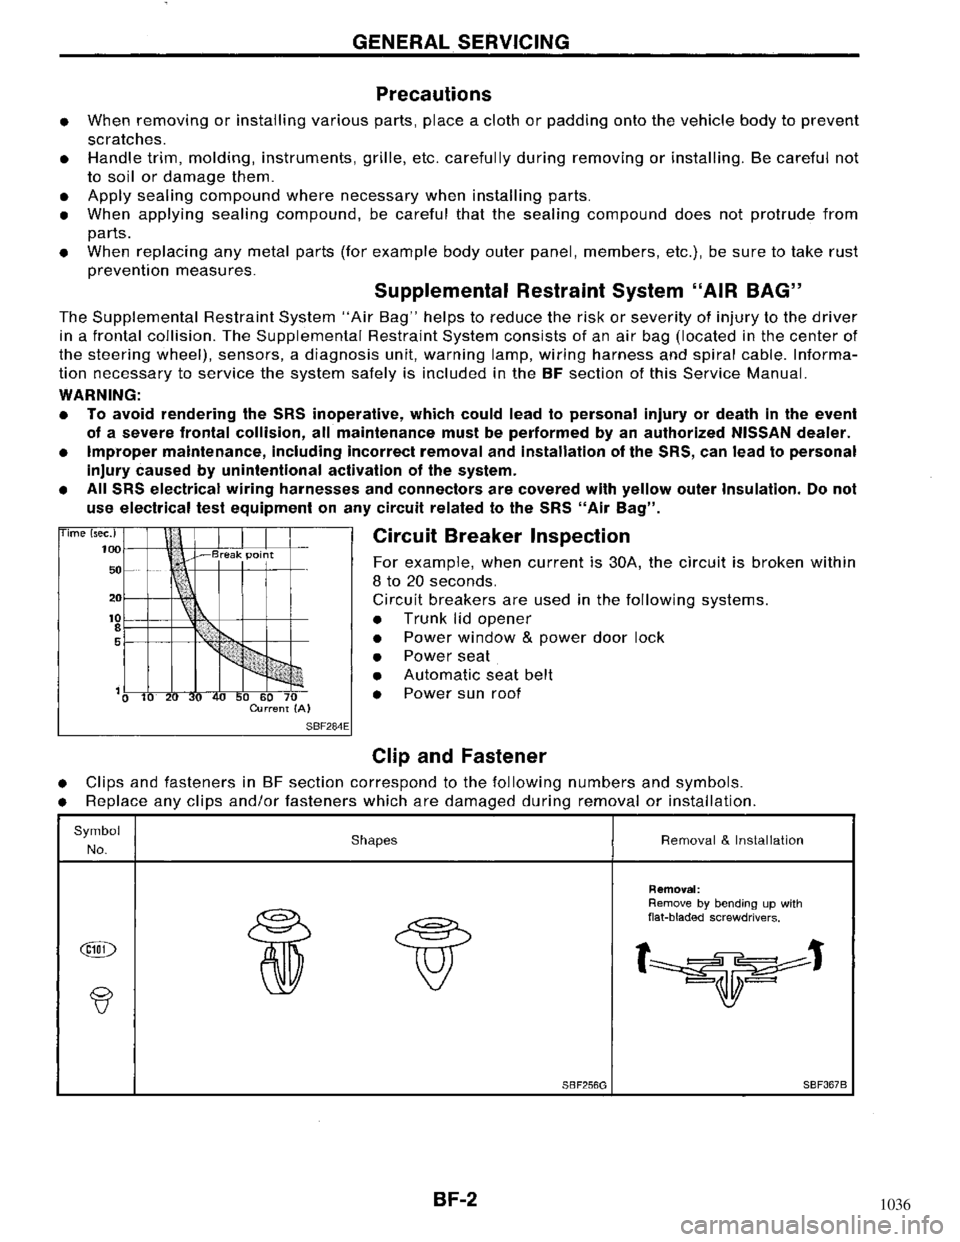 NISSAN MAXIMA 1994 A32 / 4.G Body Workshop Manual, Page 2